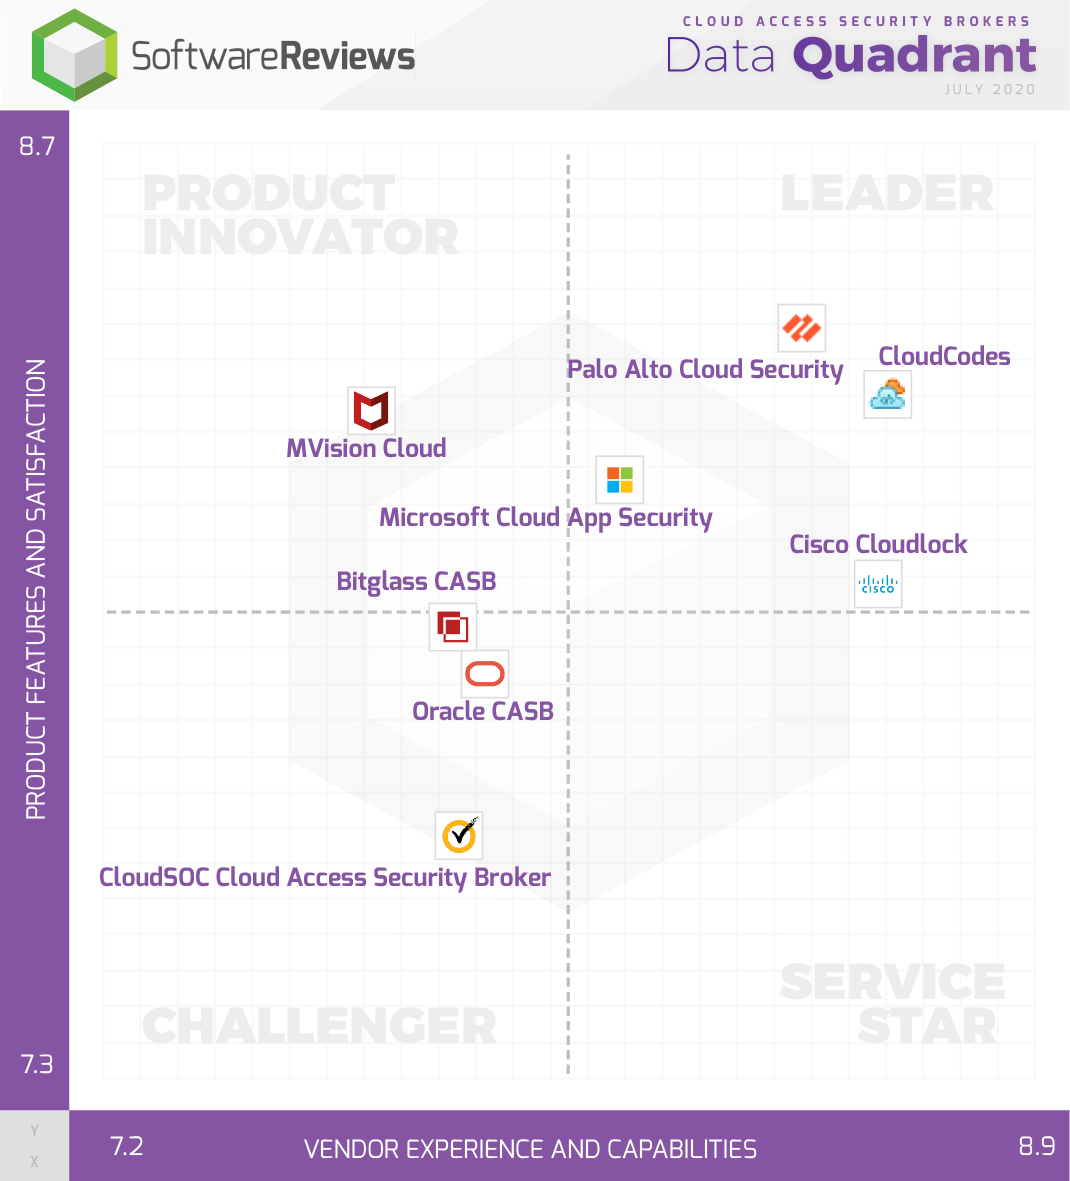 Cloud Access Security Brokers Data Quadrant